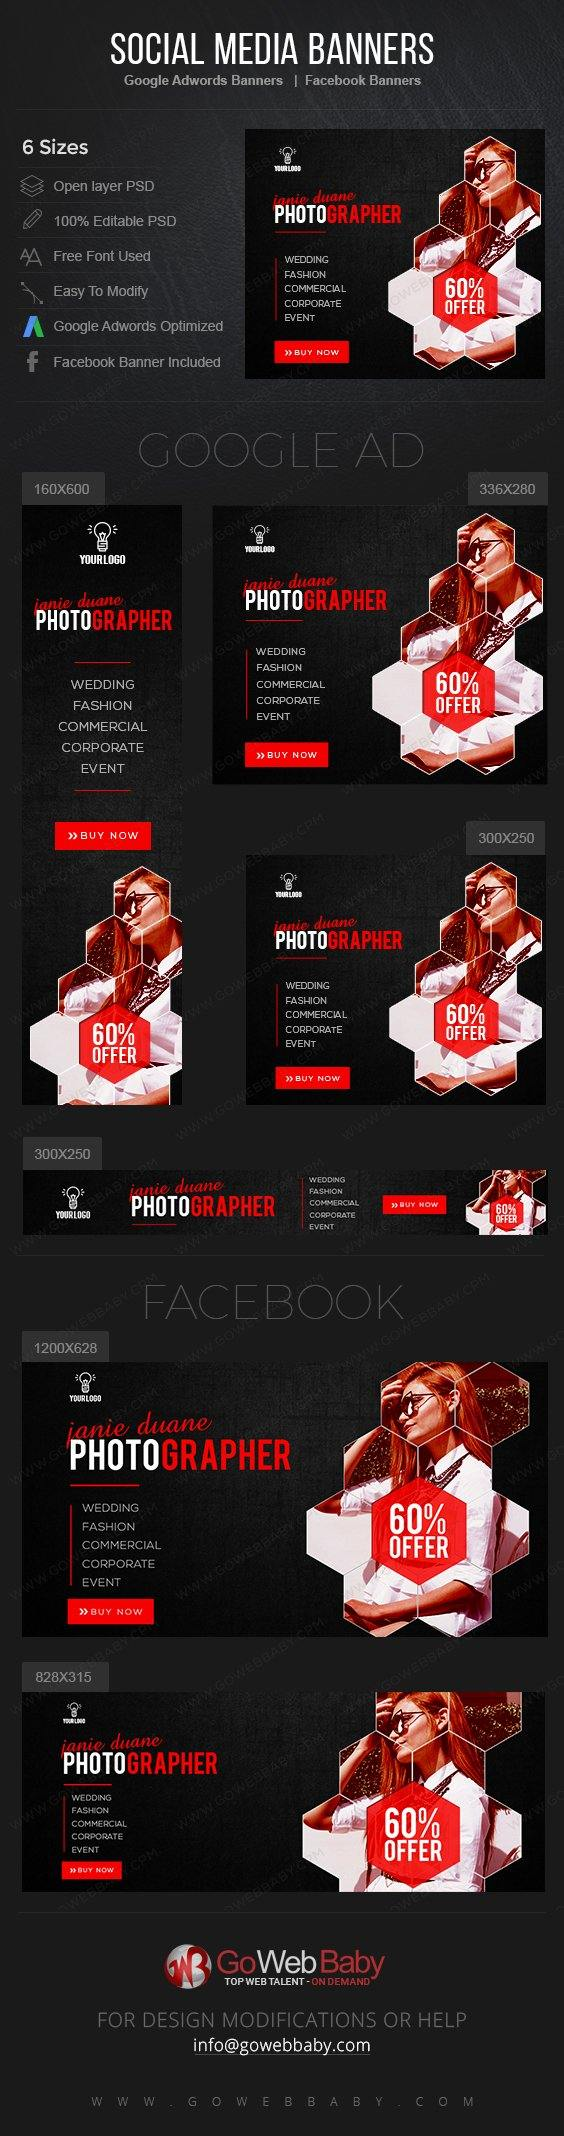 Google Adwords Display Banner with Facebook Banners - Photography For Website Marketing - GoWebBaby.Com